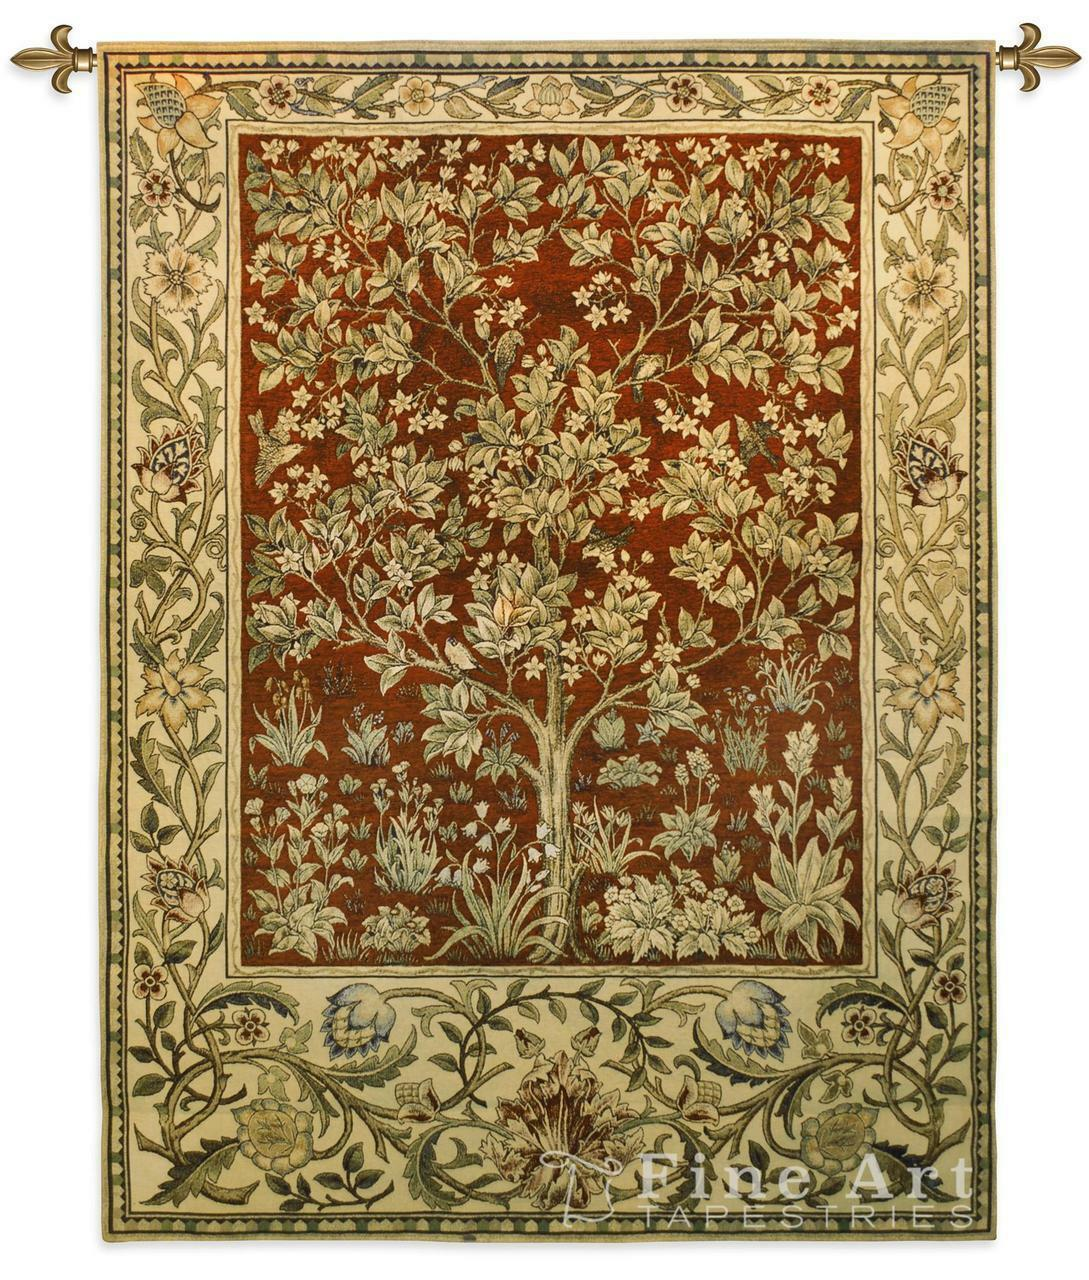 Tree Of Life Ruby Mille Fleur Wall Tapestry - William Morris Design H53  x W40